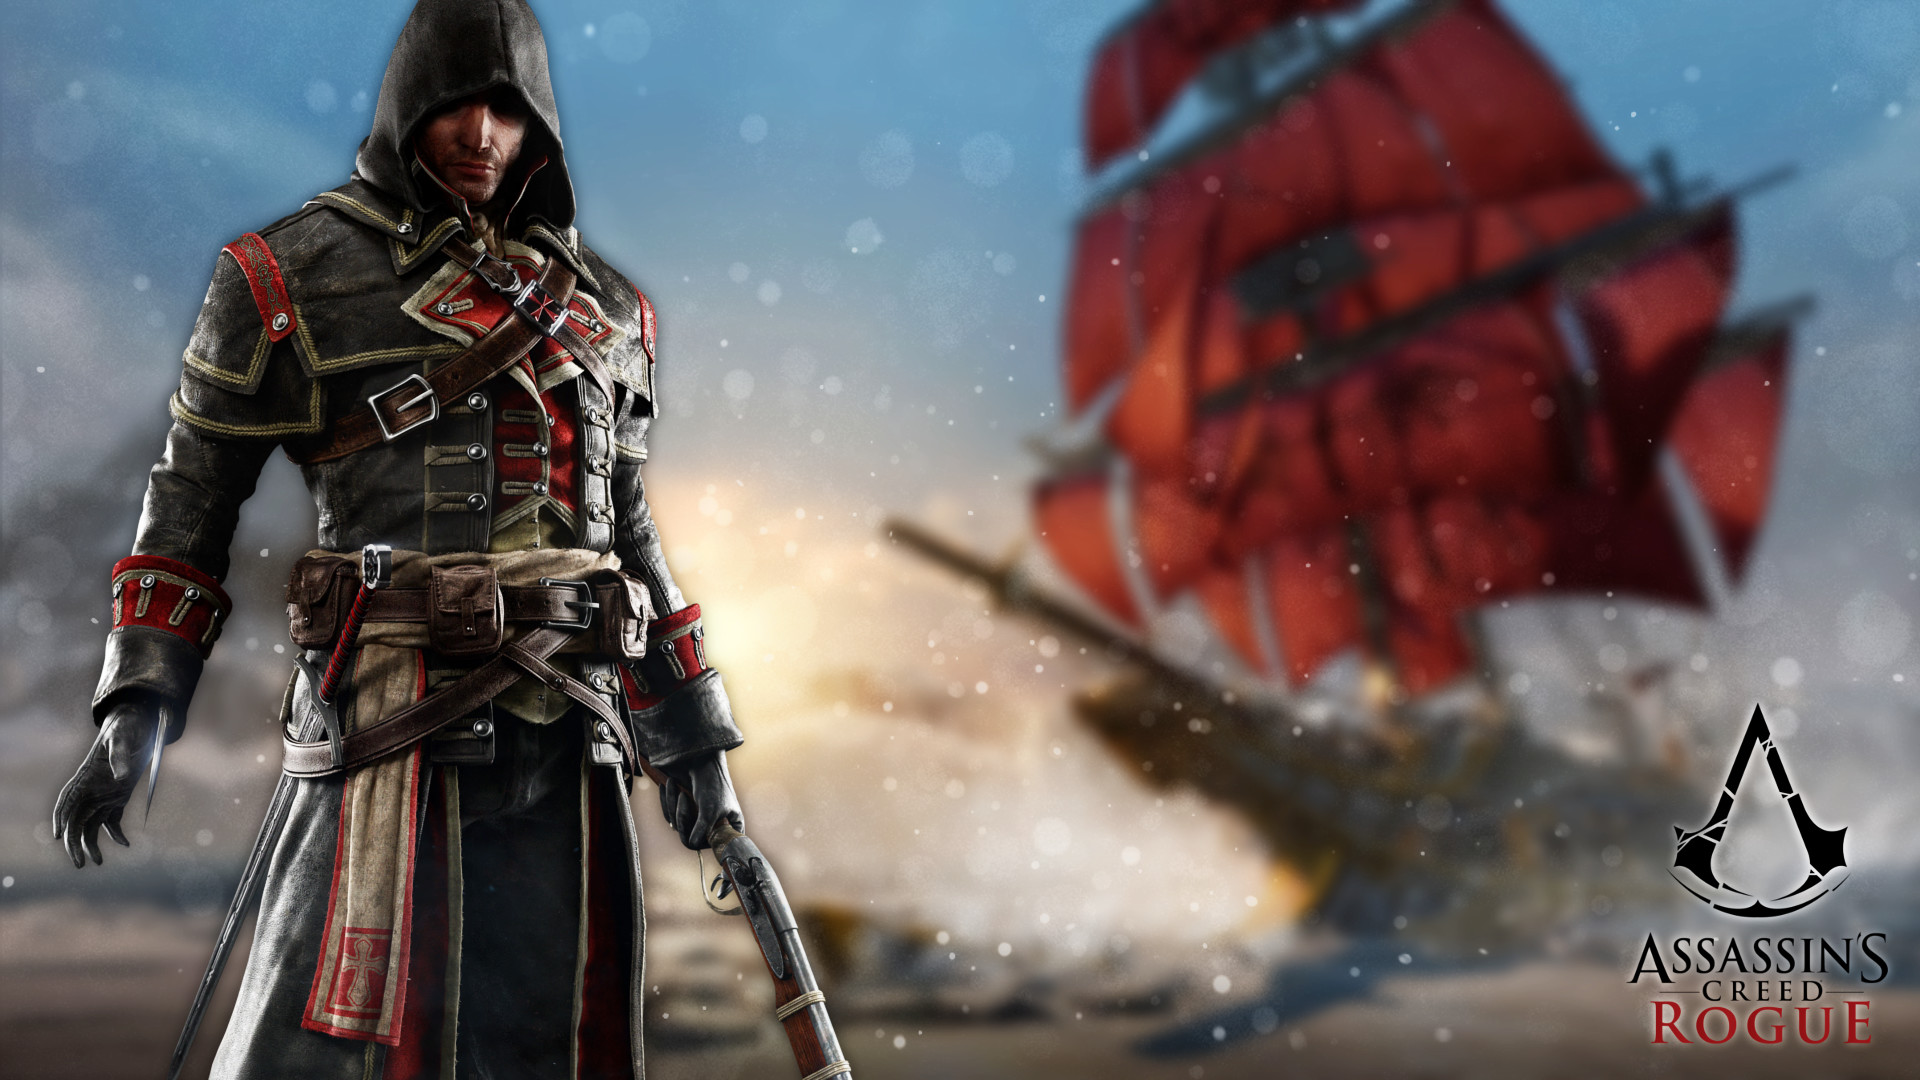 1920x1080 Assassin's Creed Rogue Wallpaper by ZeroMask Assassin's Creed Rogue  Wallpaper by ZeroMask